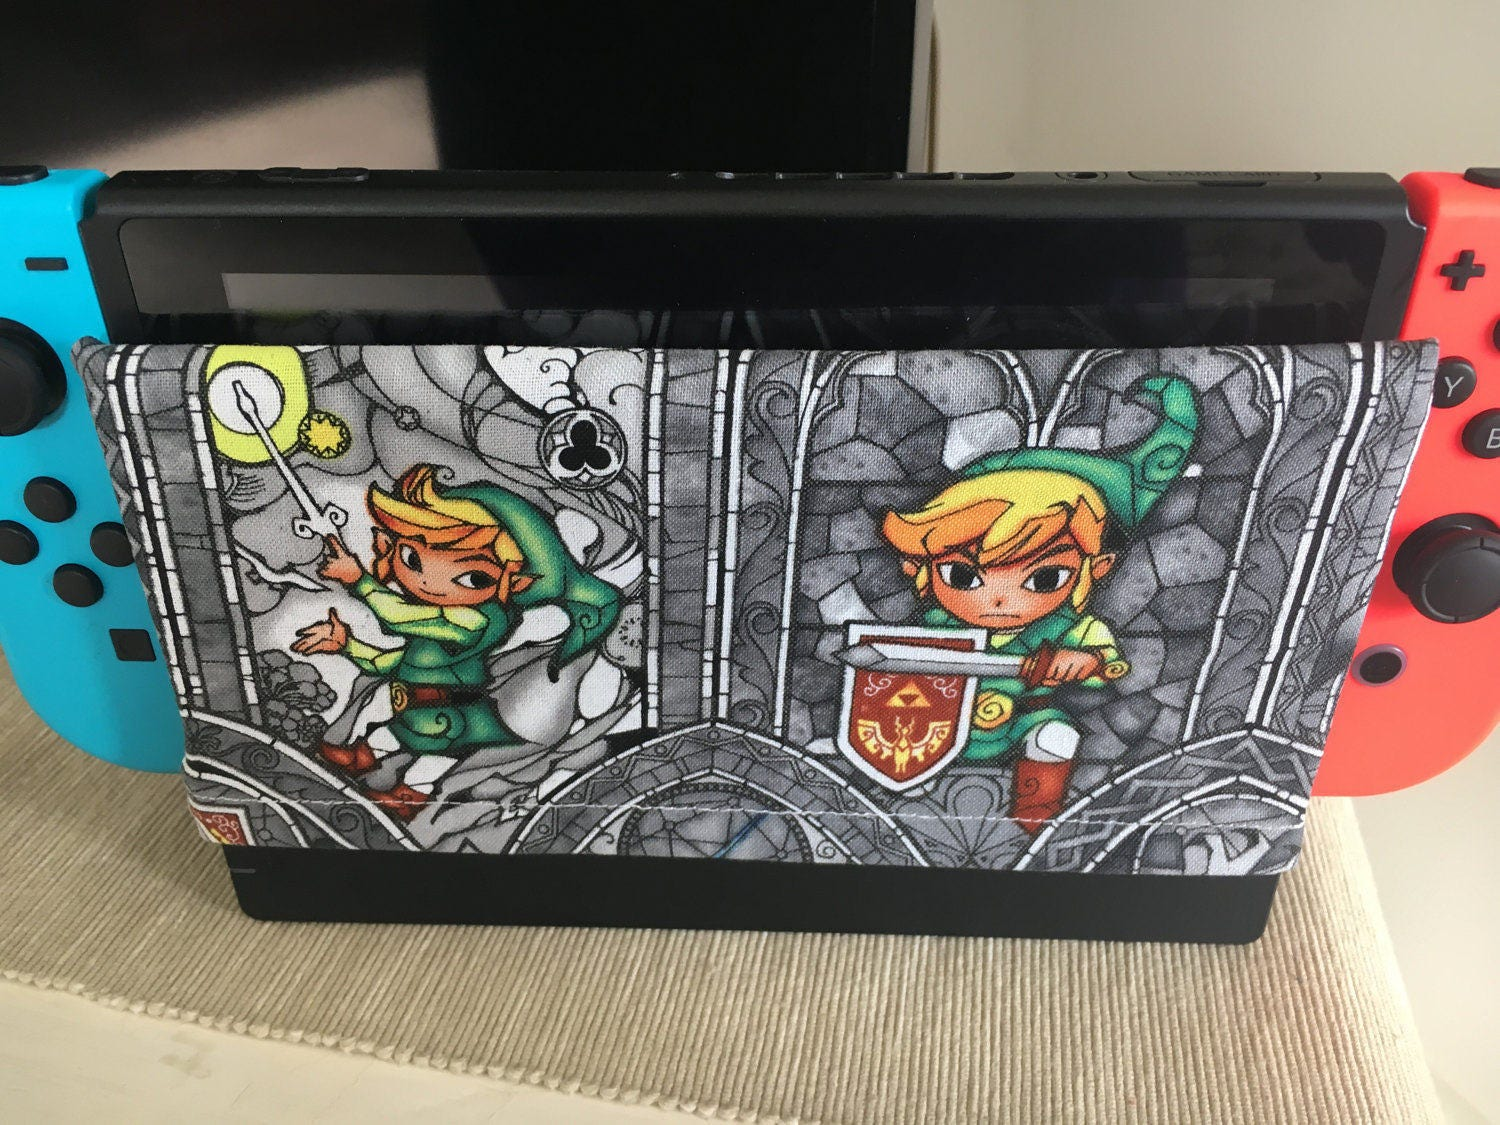 Legend of zelda nintendo switch dock cover dock sock for Housse zelda nintendo switch